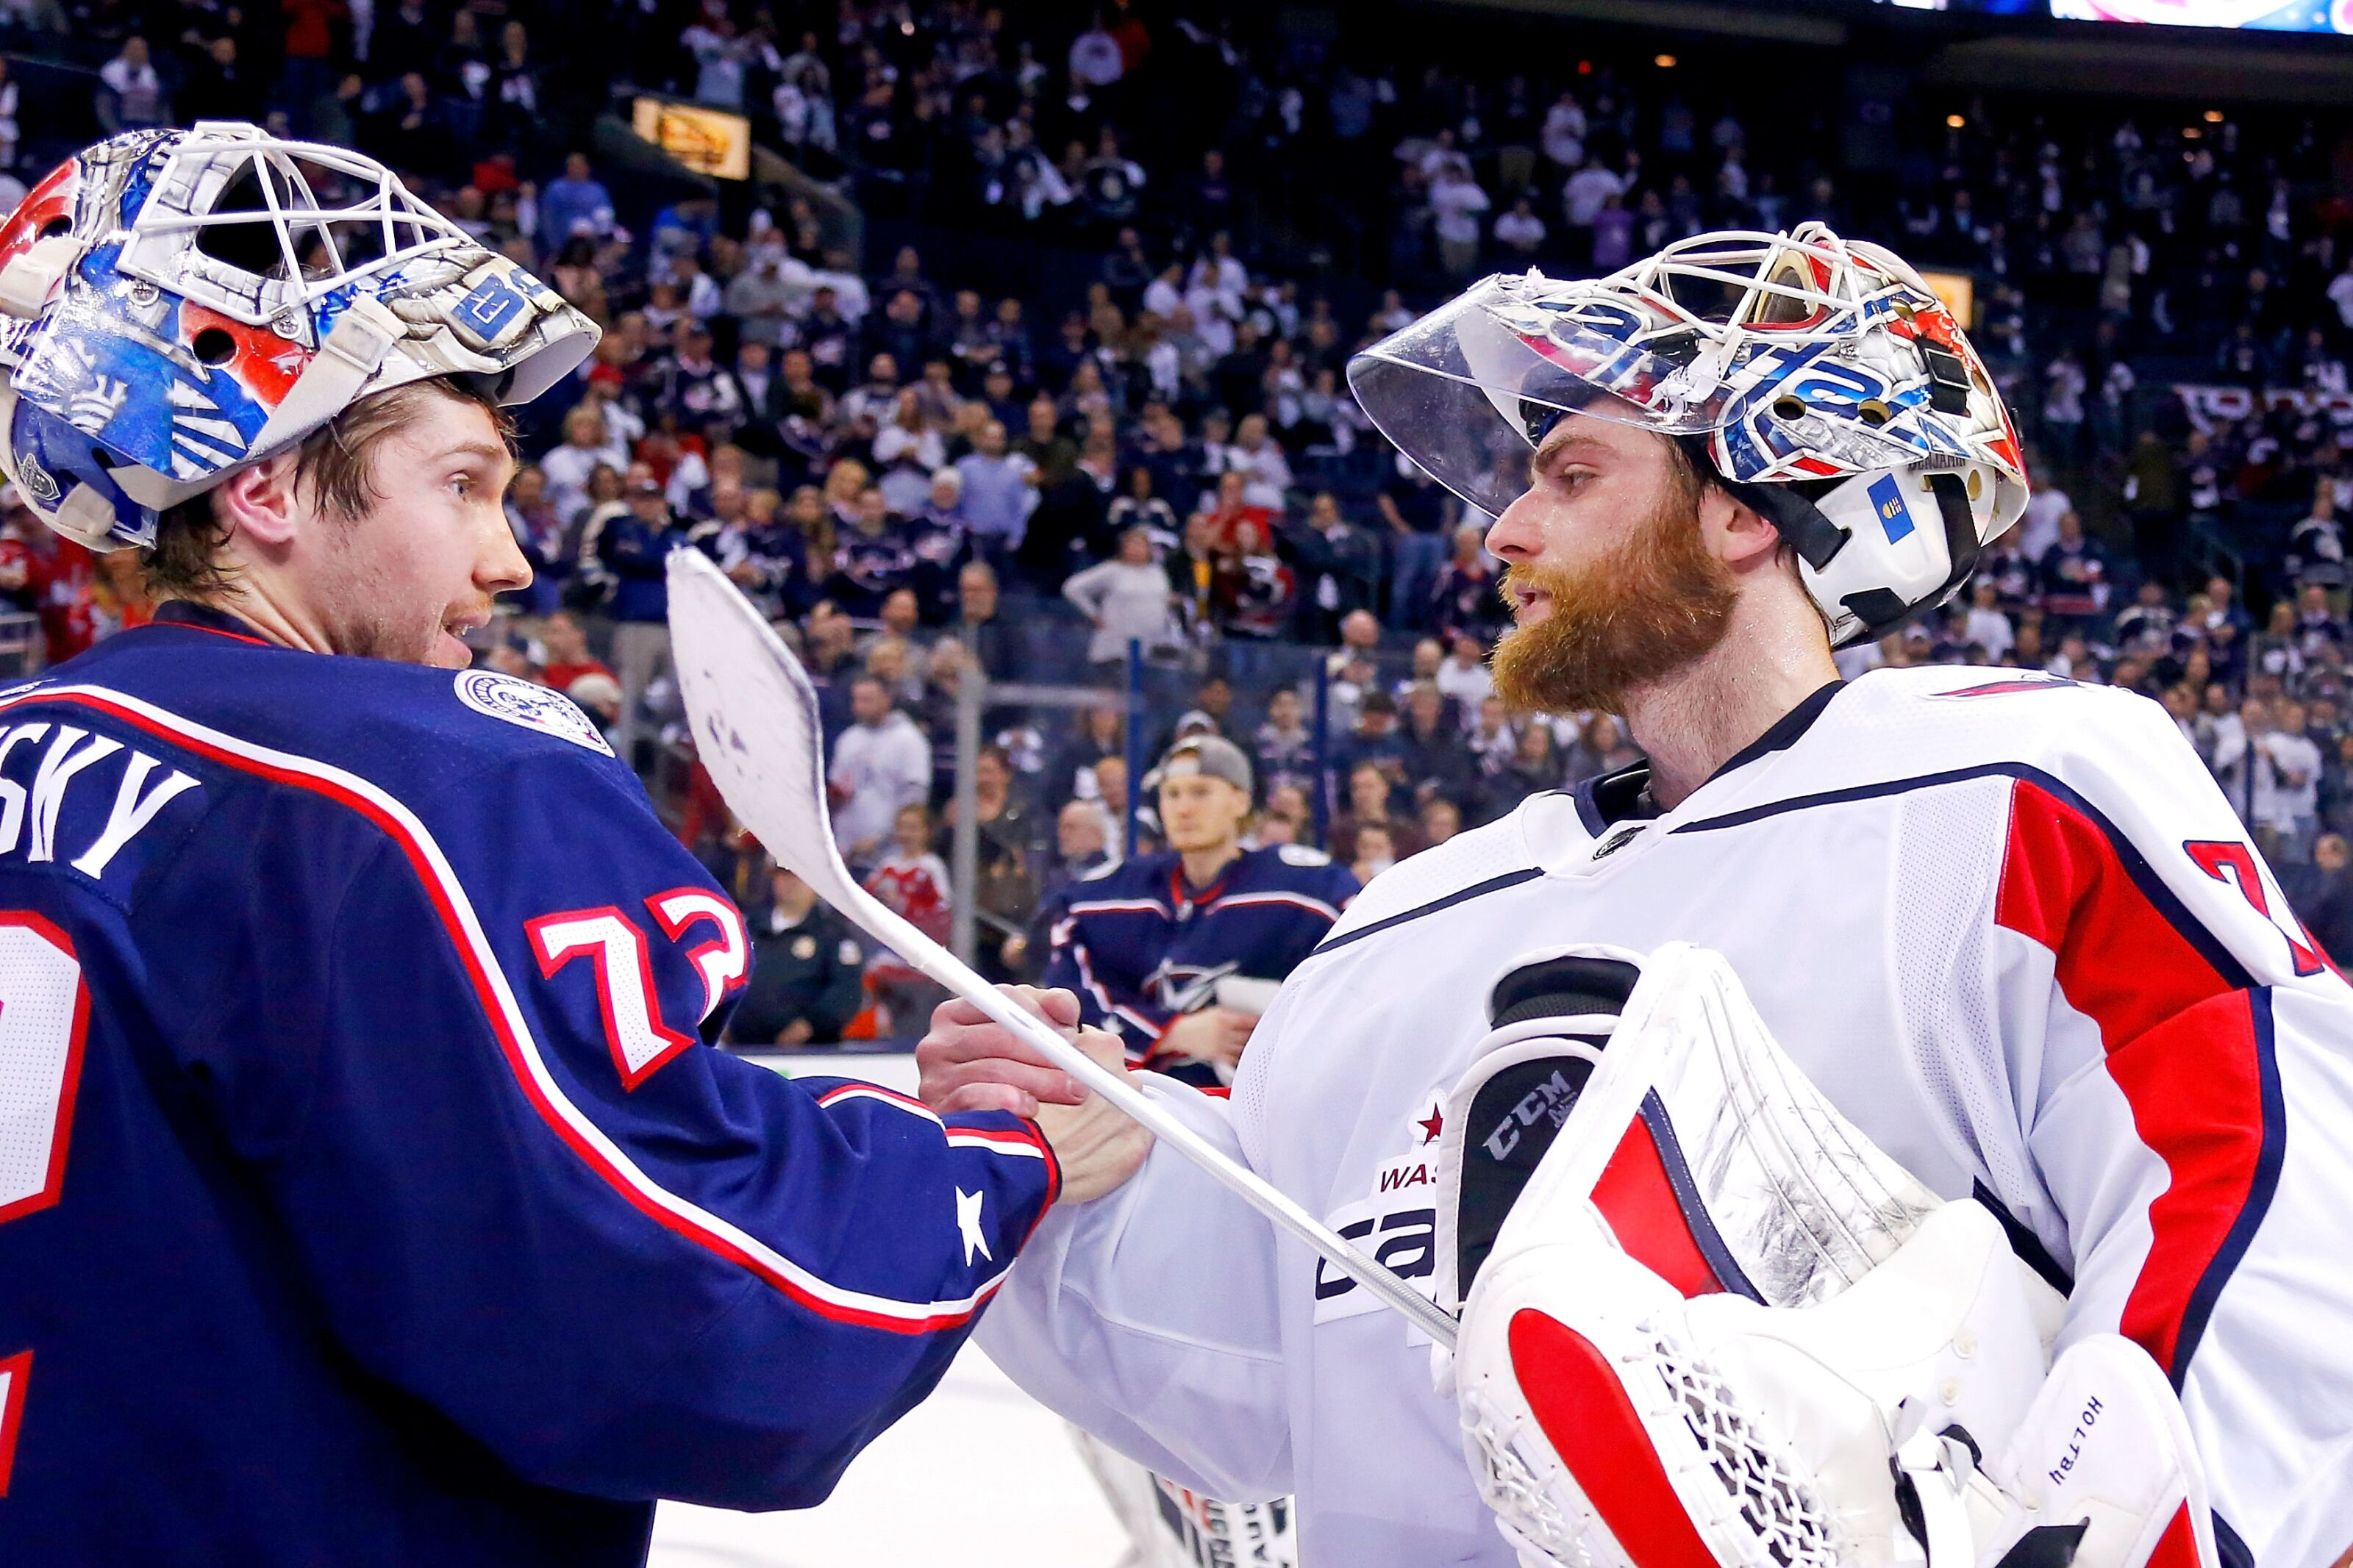 87a4af42 Washington Capitals: What we can learn about Braden Holtby from Sergei  Bobrovsky's contract